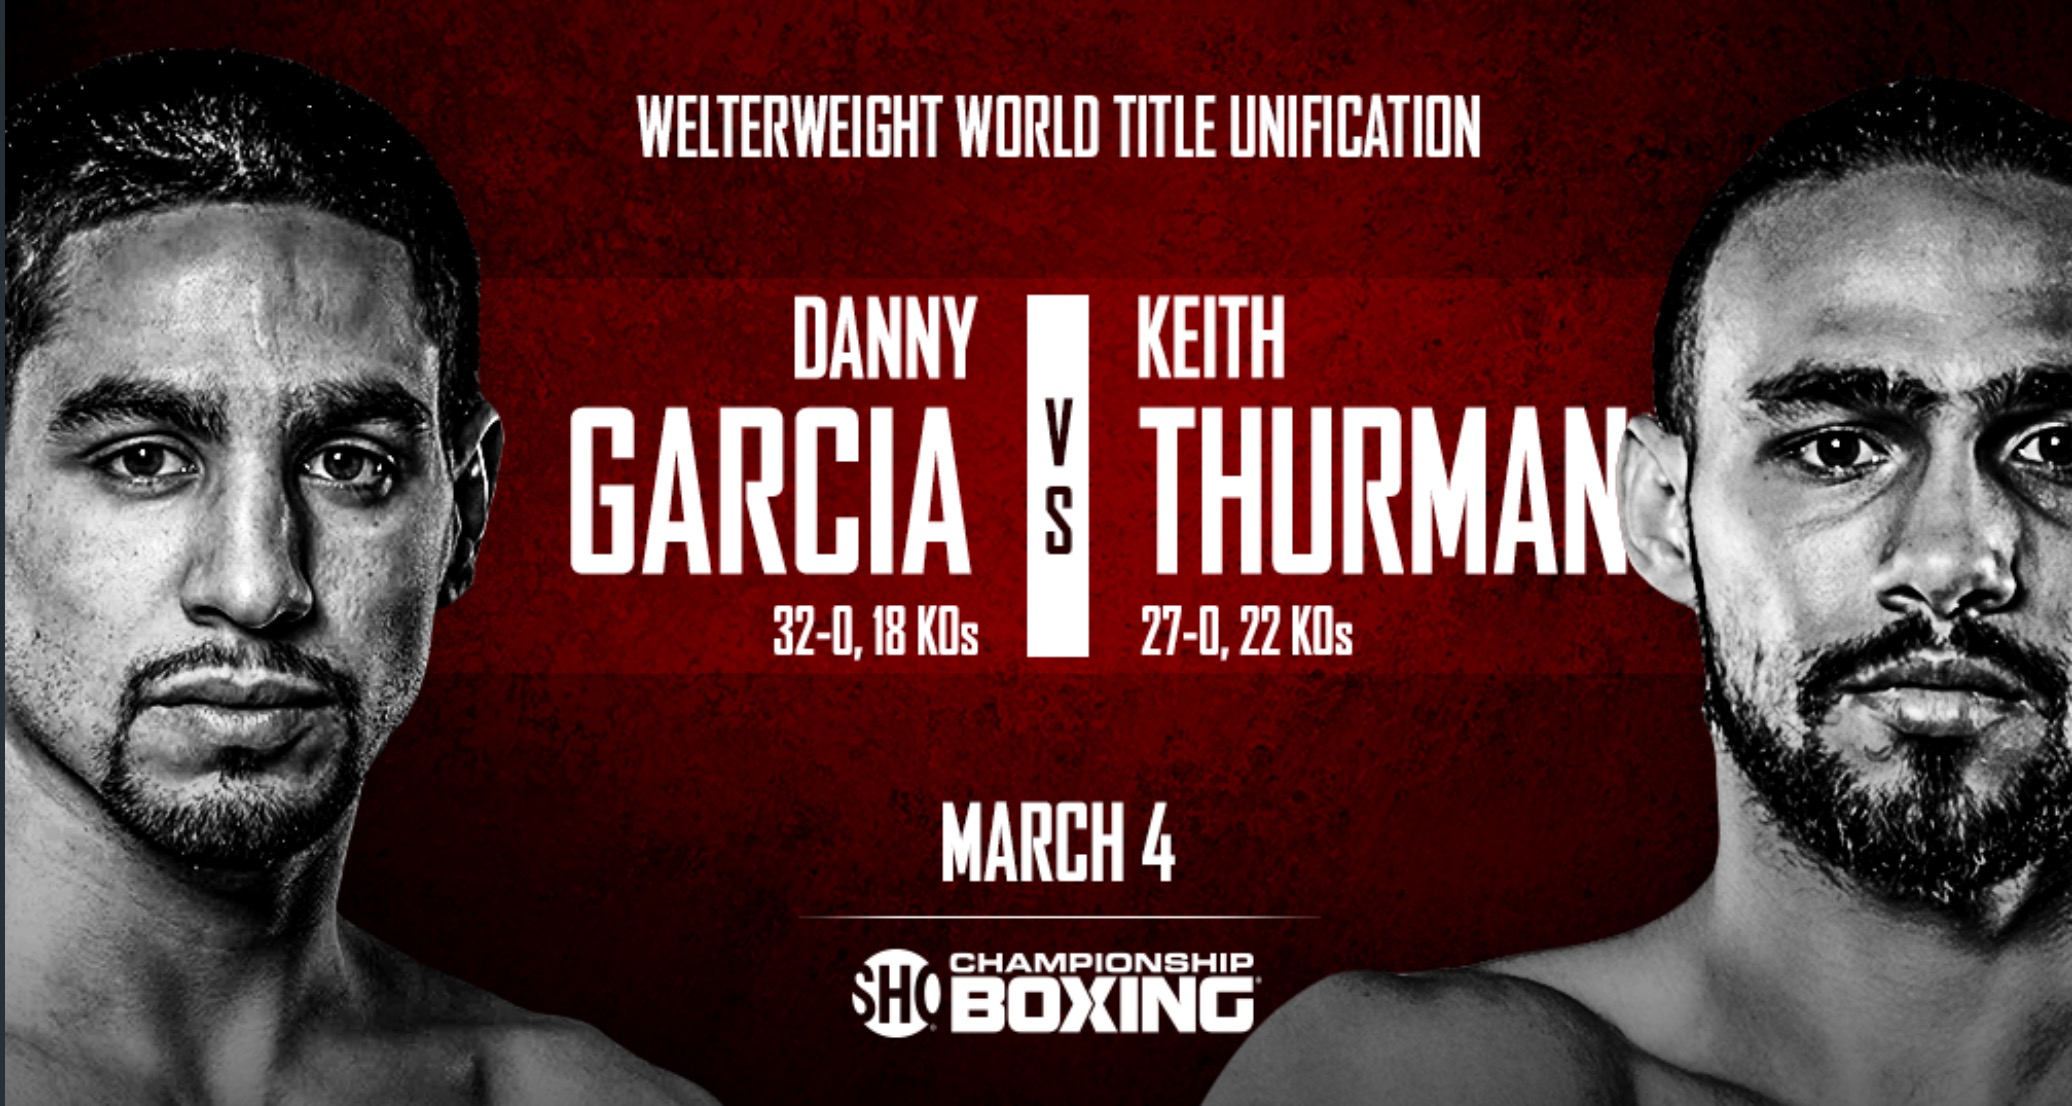 Danny Garcia vs. Keith Thurman will take place on March 4th. Photo: Showtime Sports